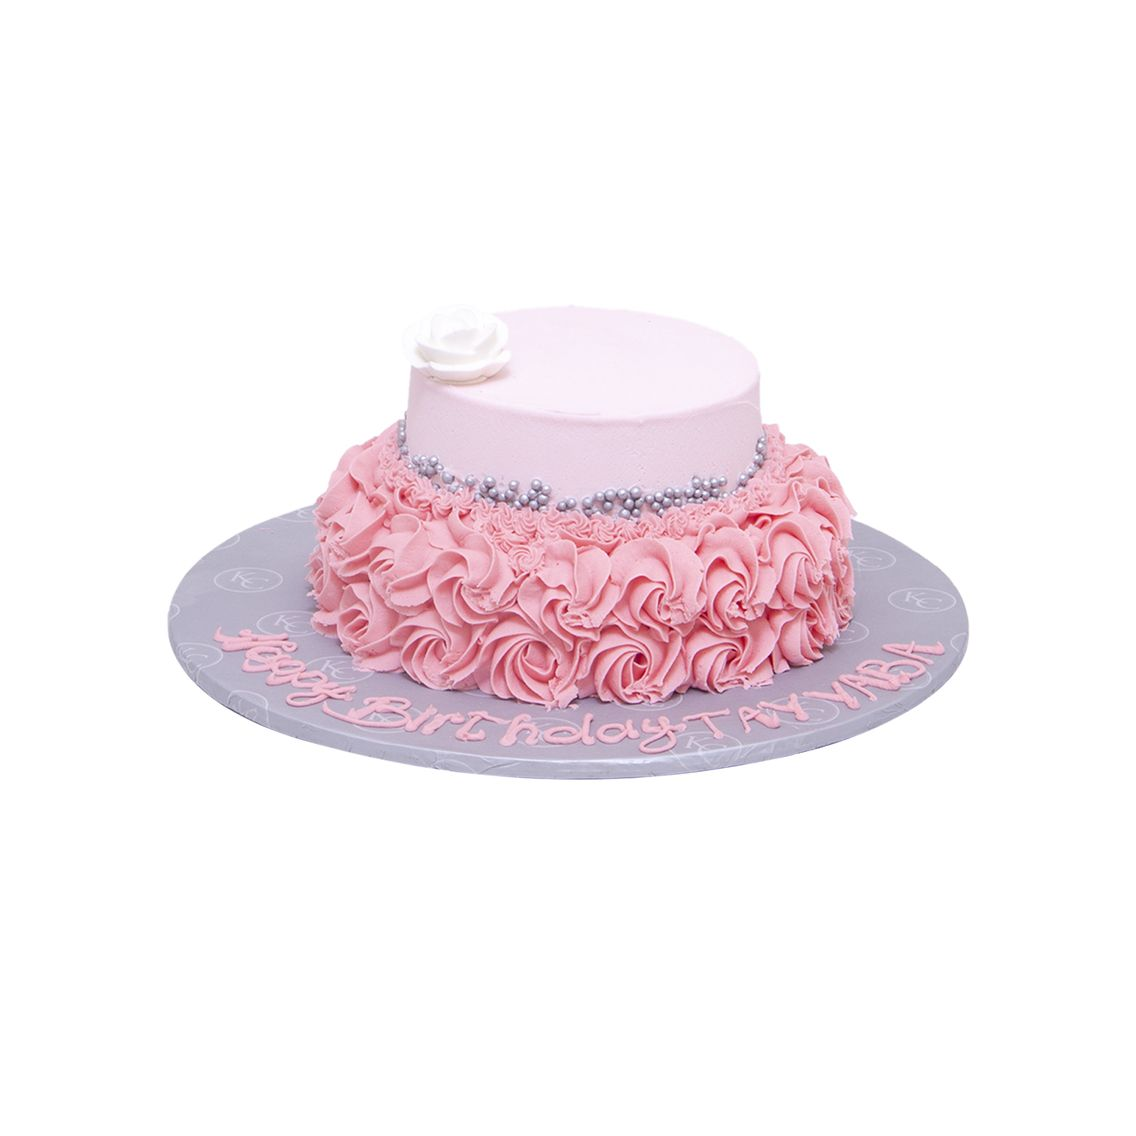 Kitchen Cuisine Default Category Pink Rosette with Pearls Cake